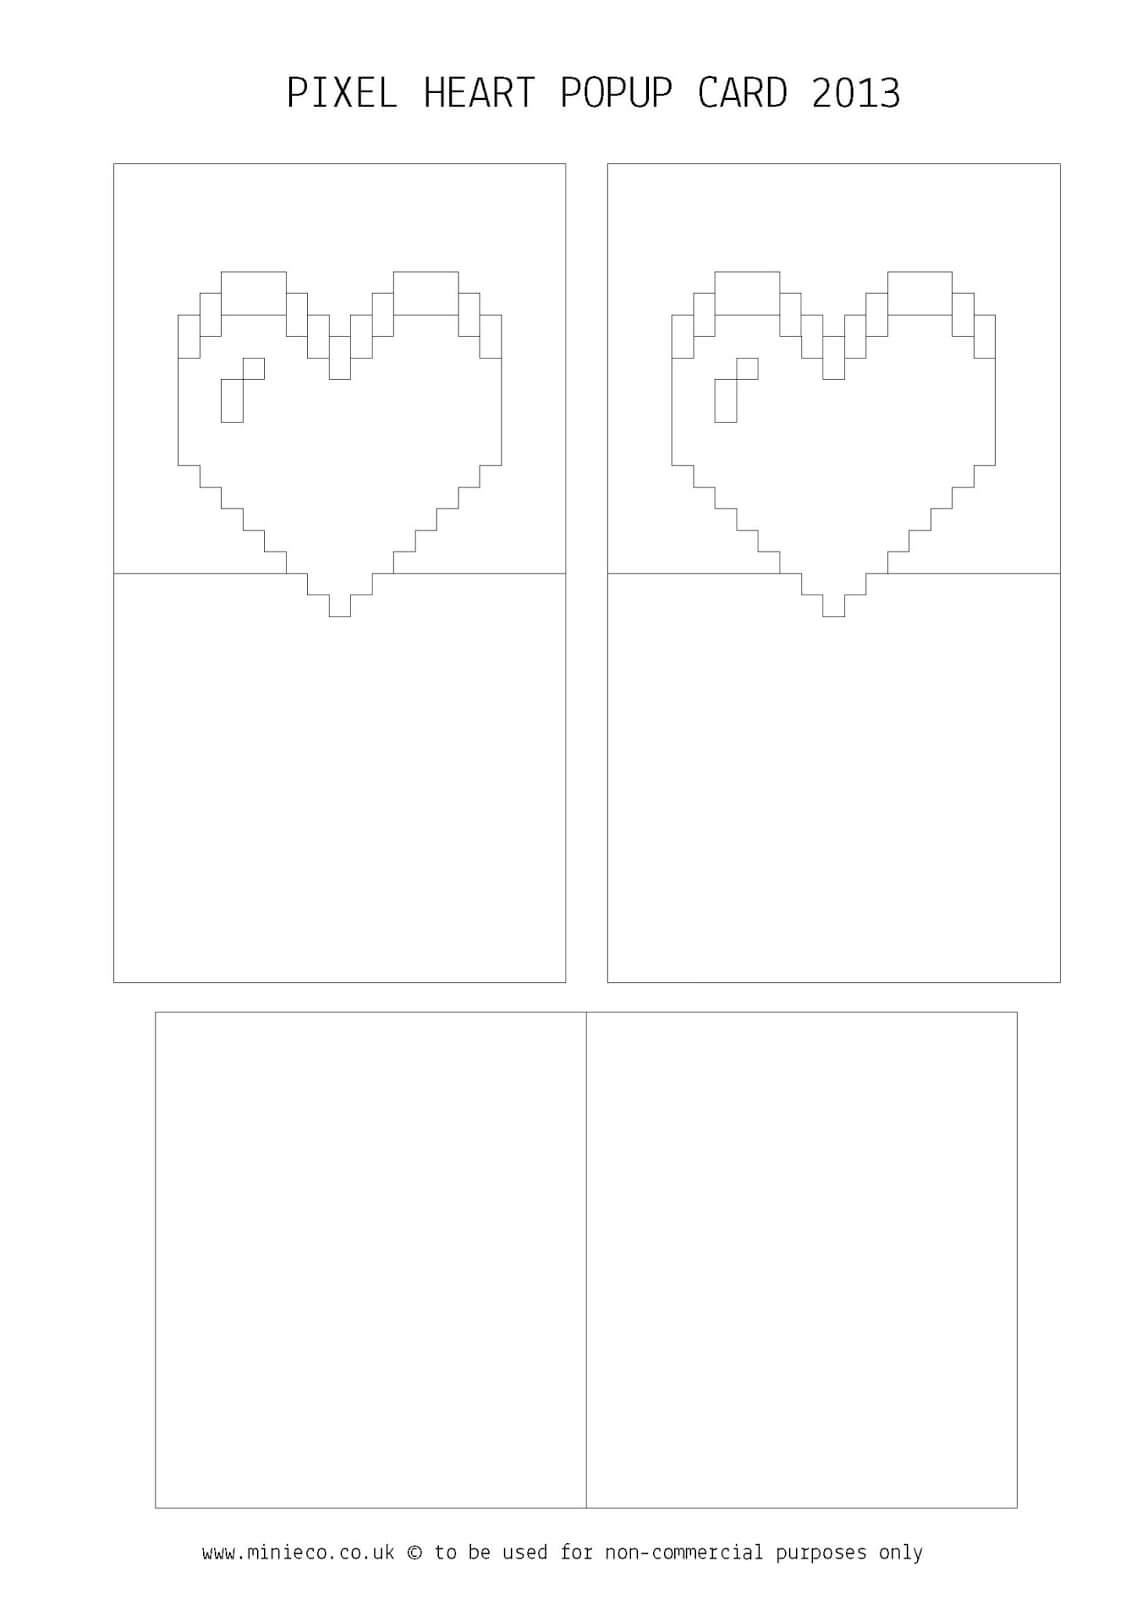 Pixel Heart Pop Up Card Template ] - Day Pixel Heart Pop Up For Pixel Heart Pop Up Card Template